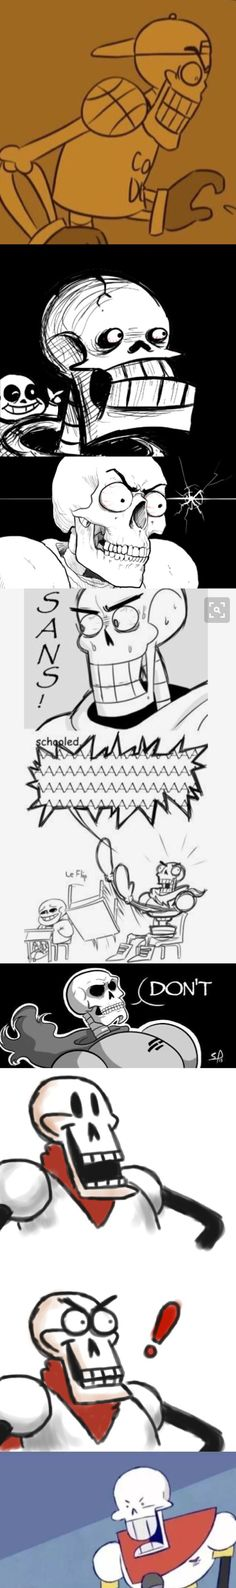 Papyrus' many reaction to puns